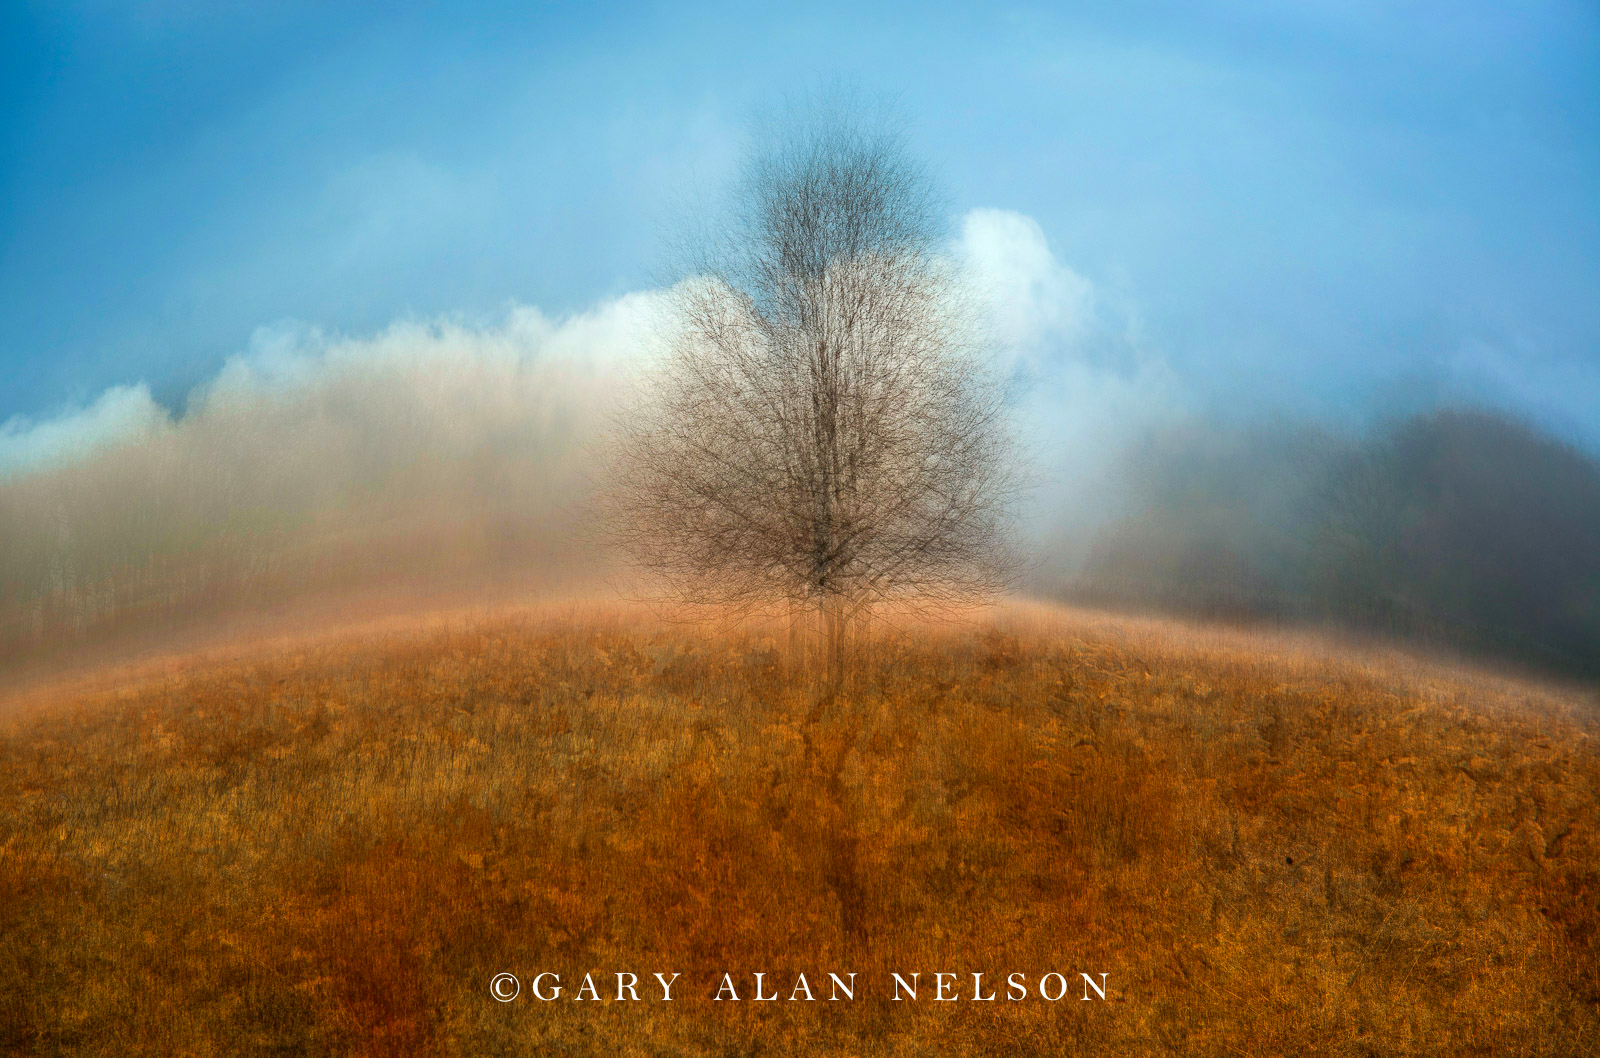 clouds, fog, inspirational, trees, photo